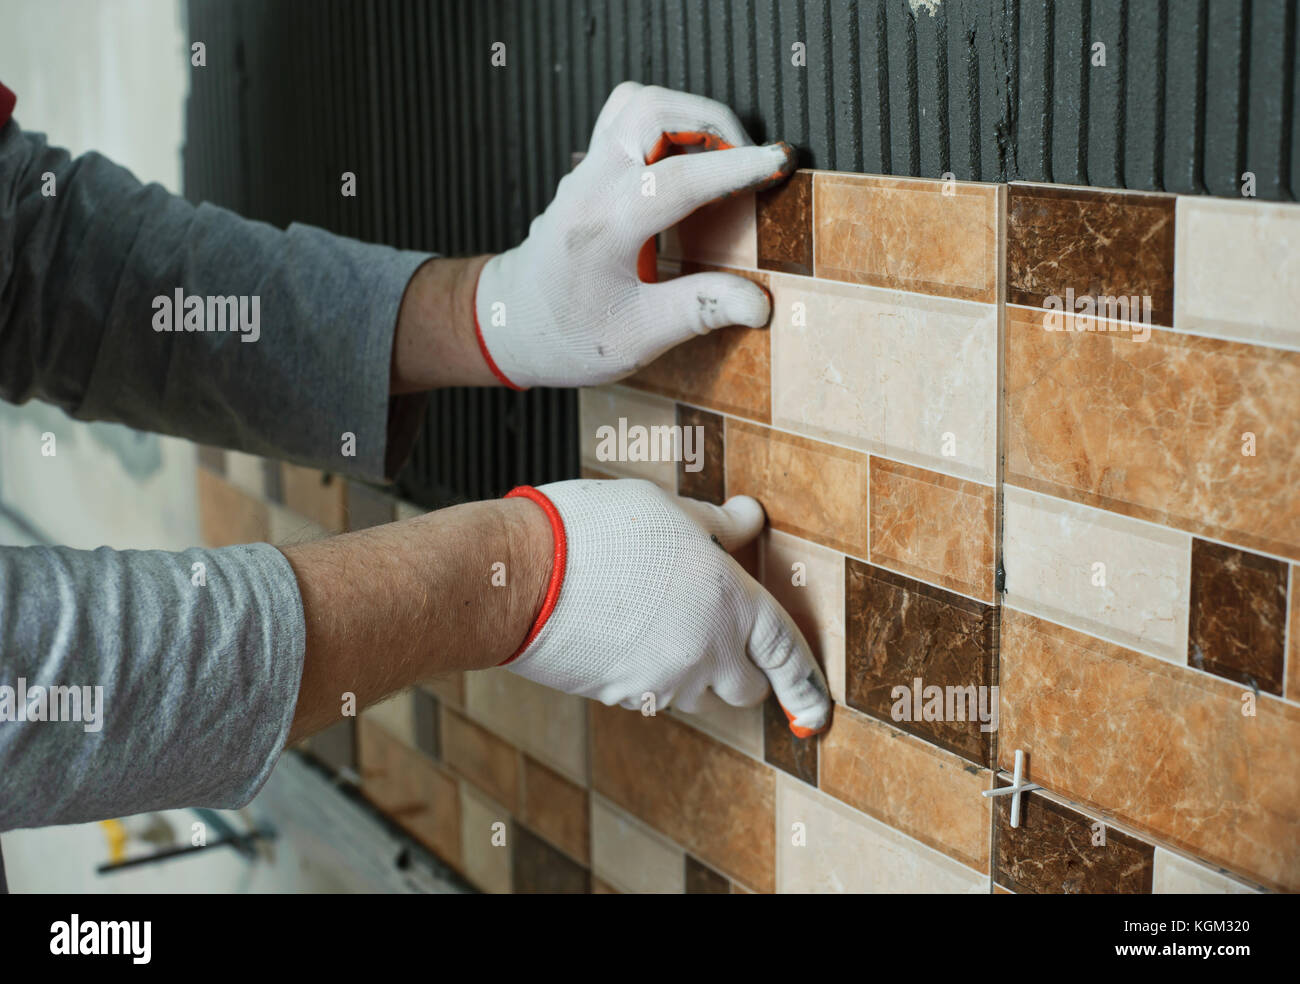 https www alamy com stock image laying ceramic tiles tiler placing ceramic wall tile in position over 165169256 html